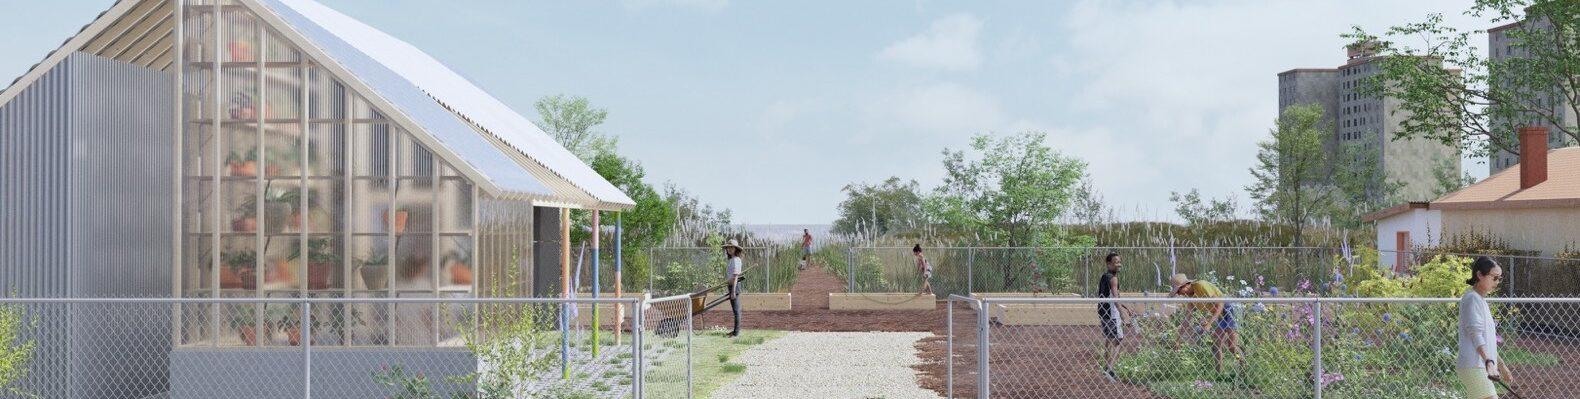 rendering of people working in community garden with a small greenhouse